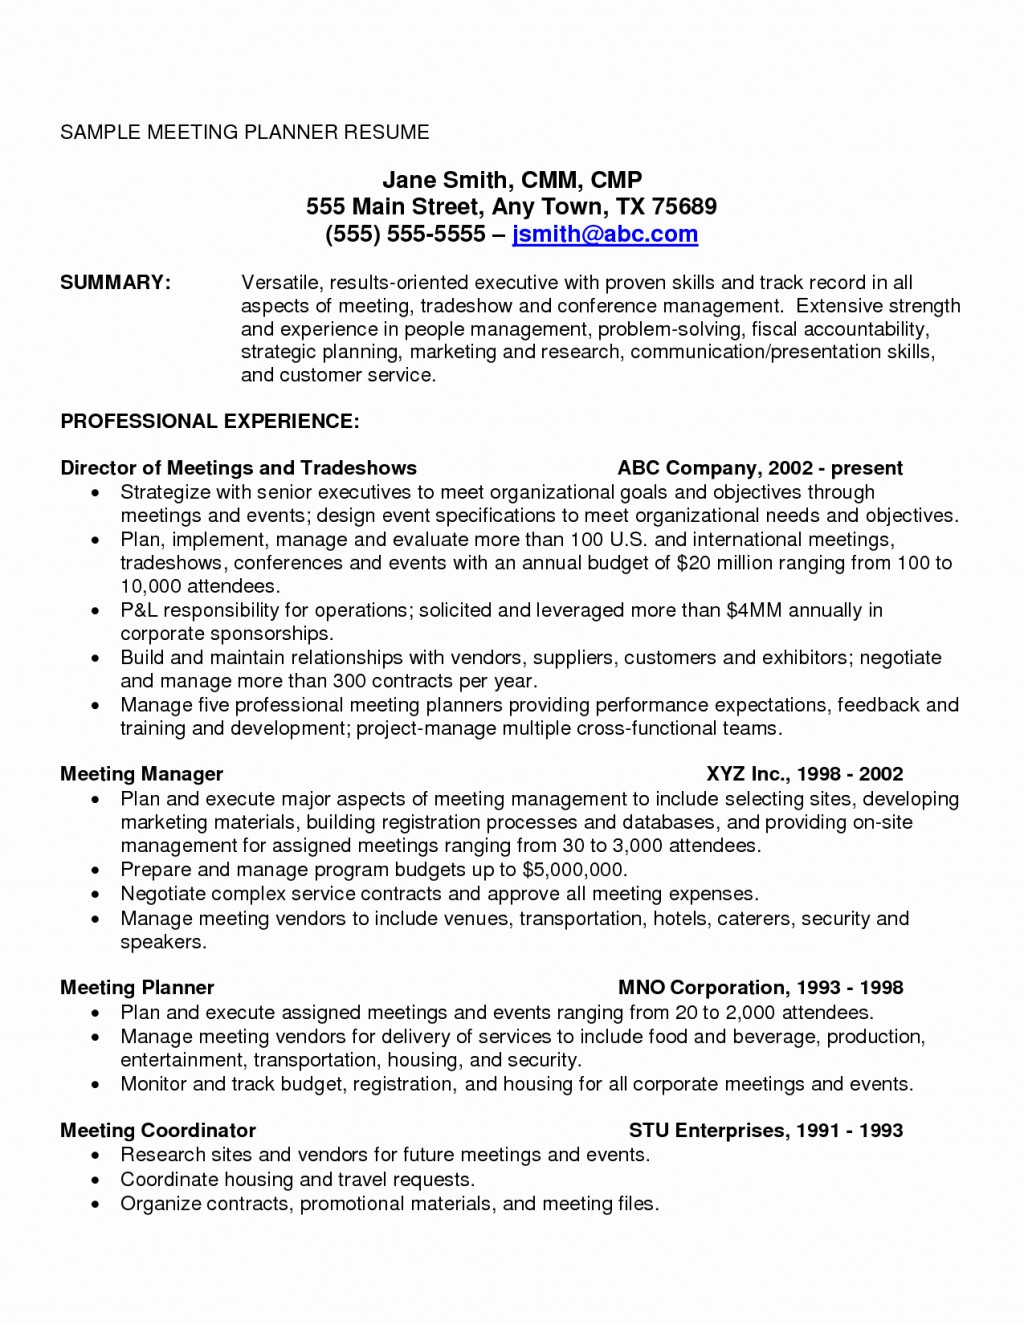 017 Event Coordinator Cover Letters Example Luxury Marketing Letter Freshsays Writers Notebook Argard Viajes Home Free Resume Creative Target Market Importance Internship Directsay Wondrous Fresh Essays Contact Customer Service Number Large